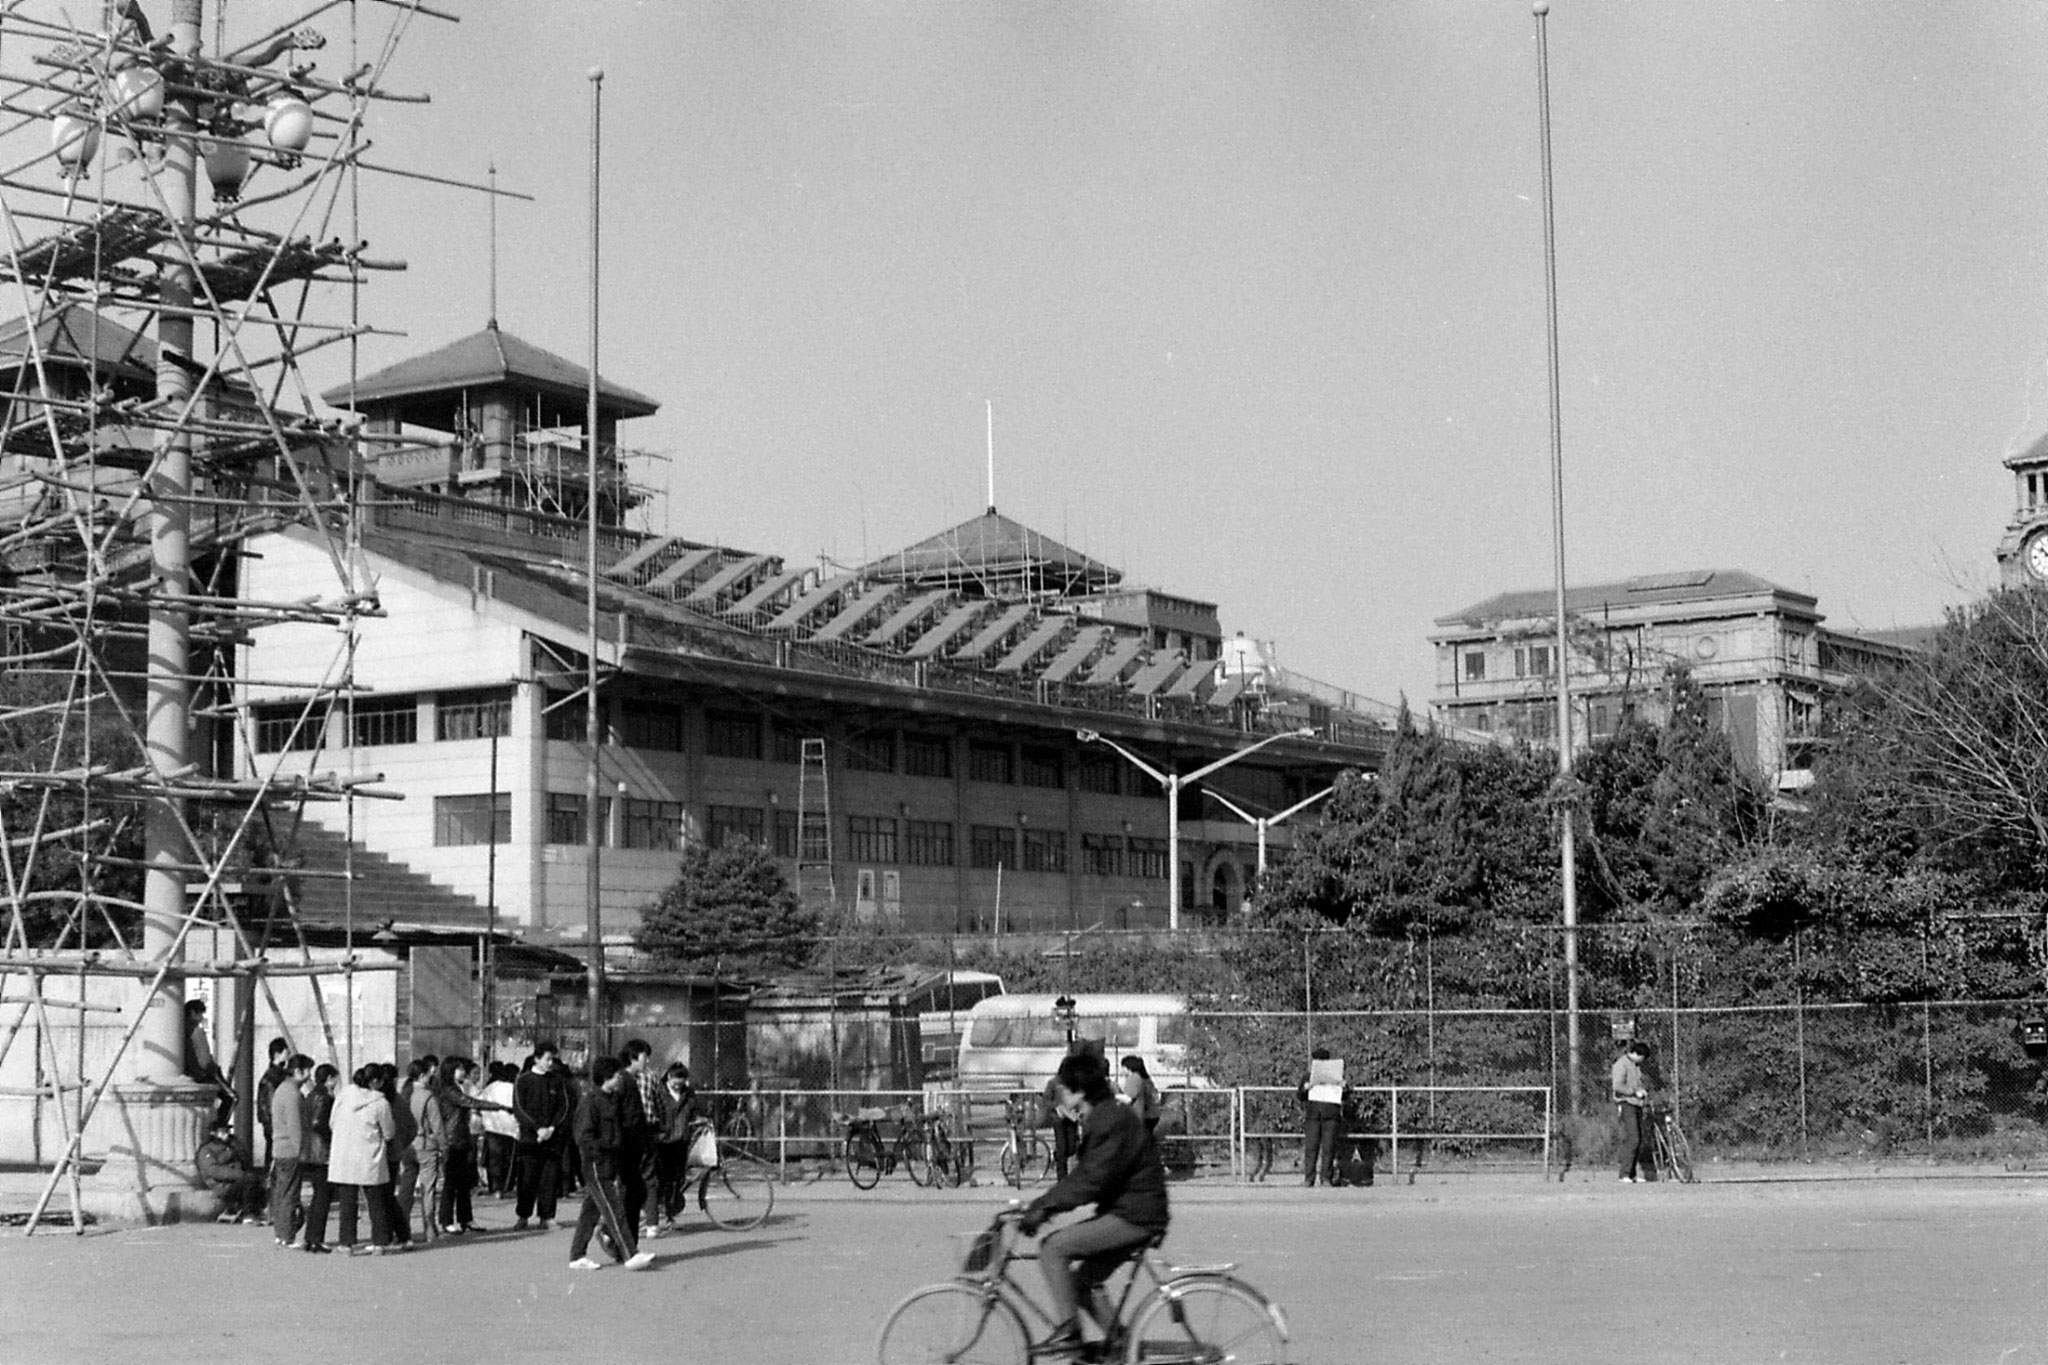 15/12/1988: -1: Shanghai, race course stands